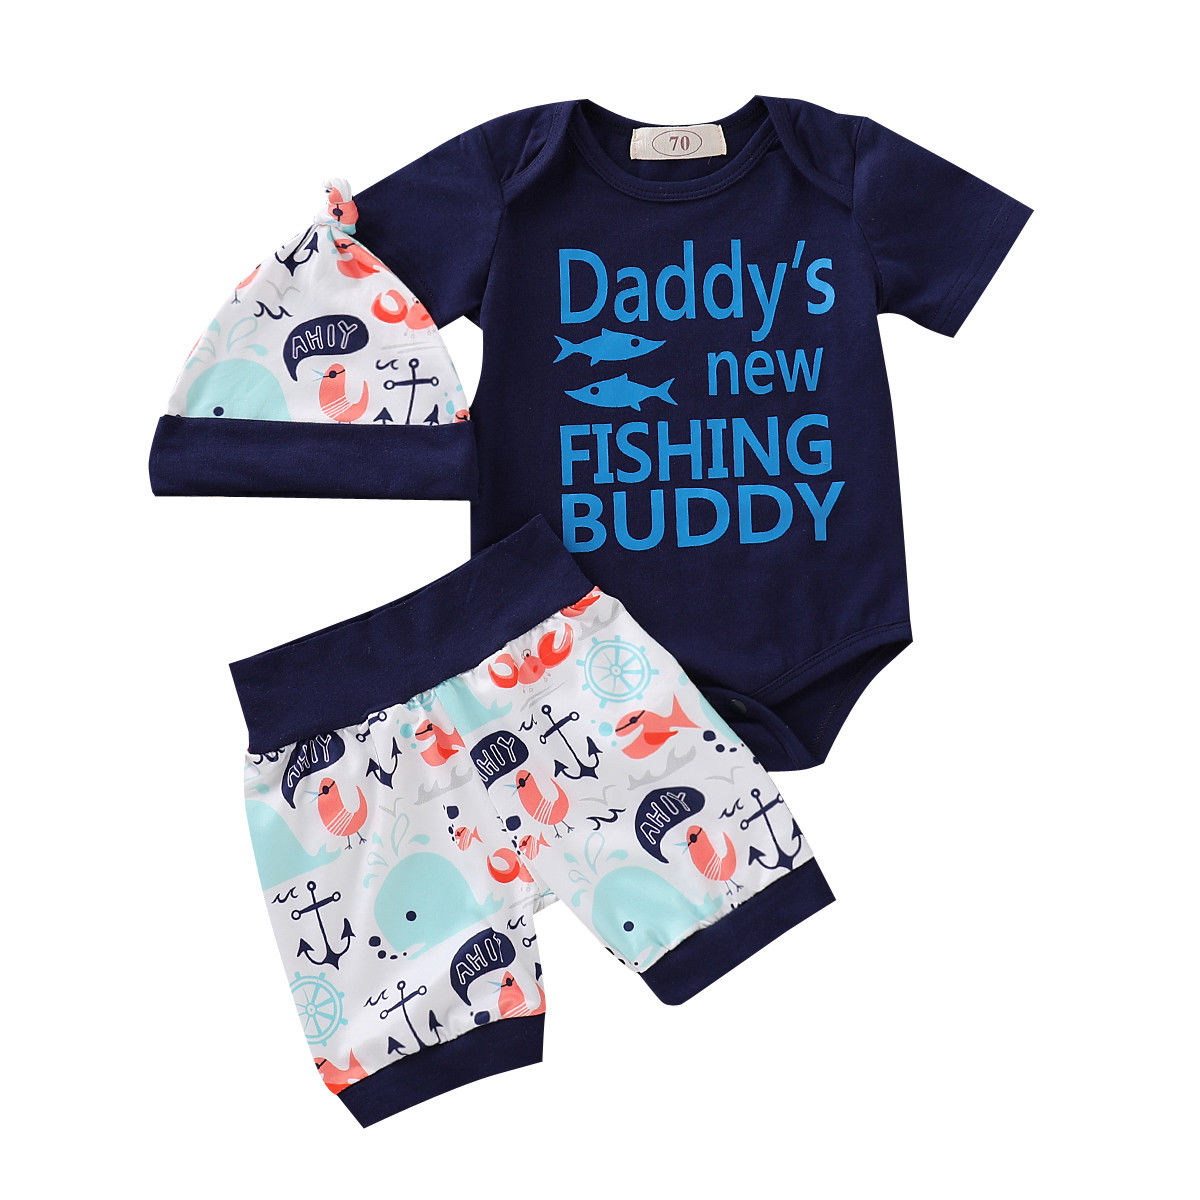 3 Pcs Daddy New Fishing Buddy Bodysuit